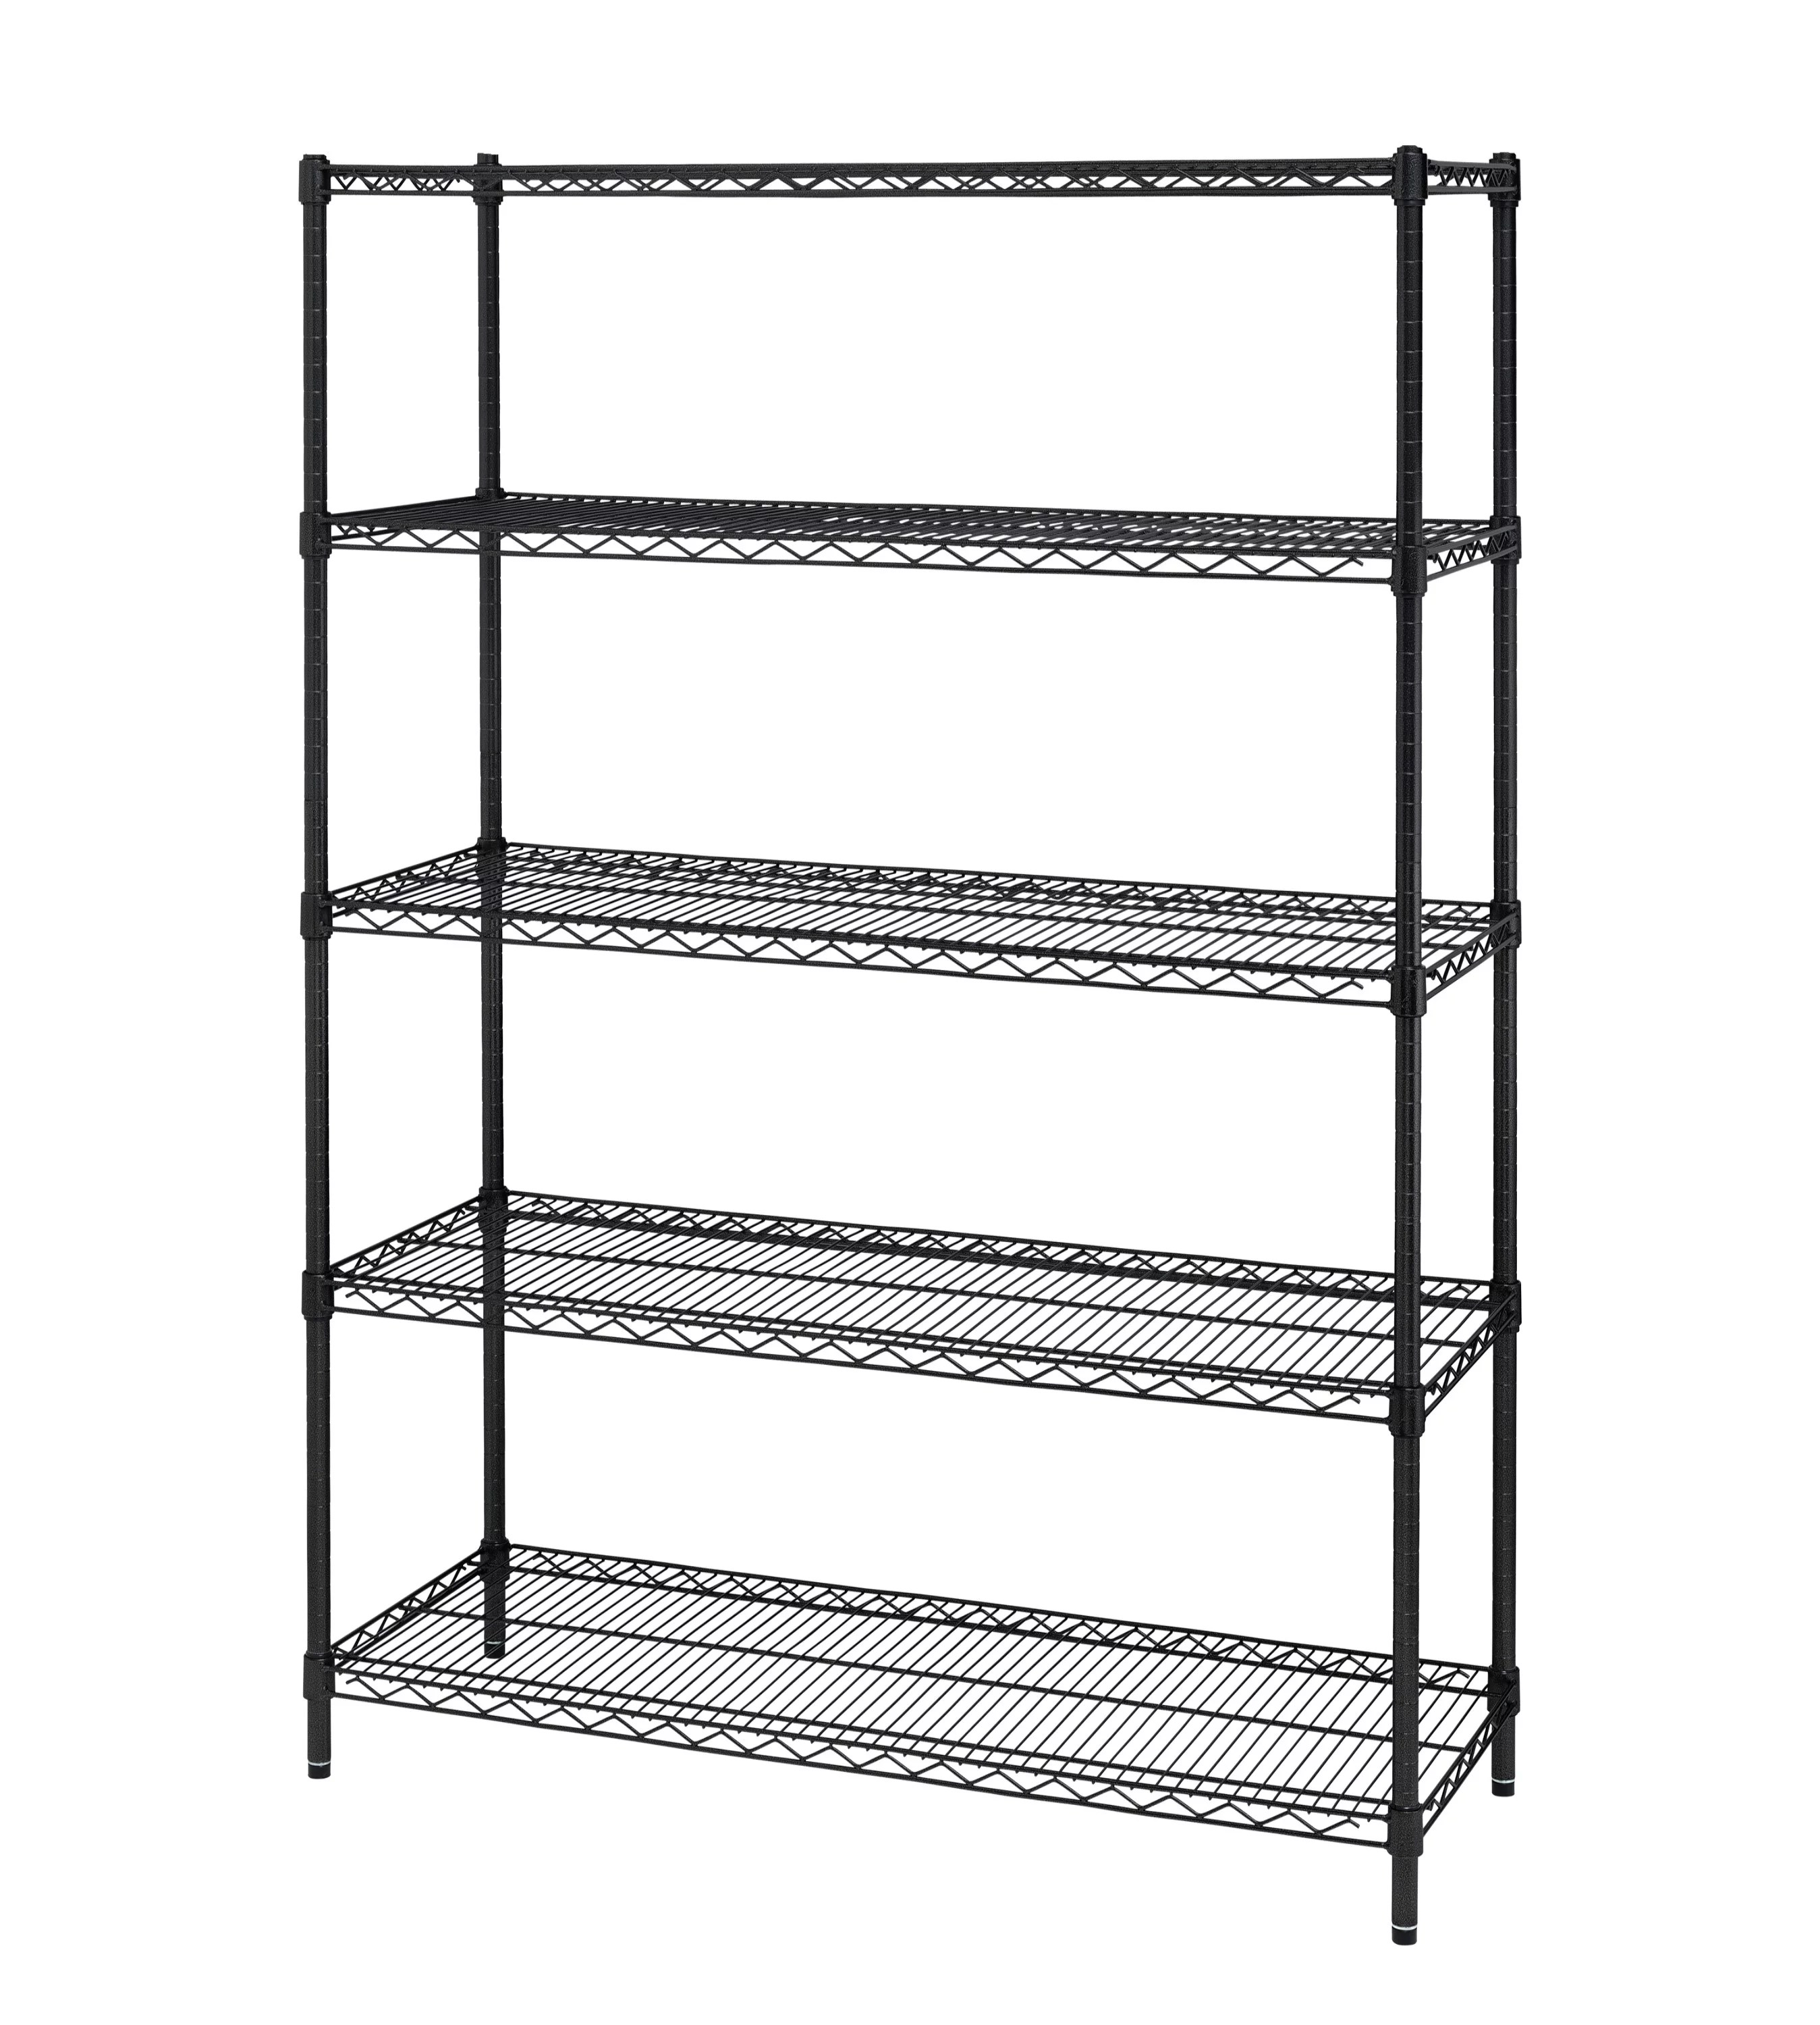 Metal Shelving Hyper Tough 48